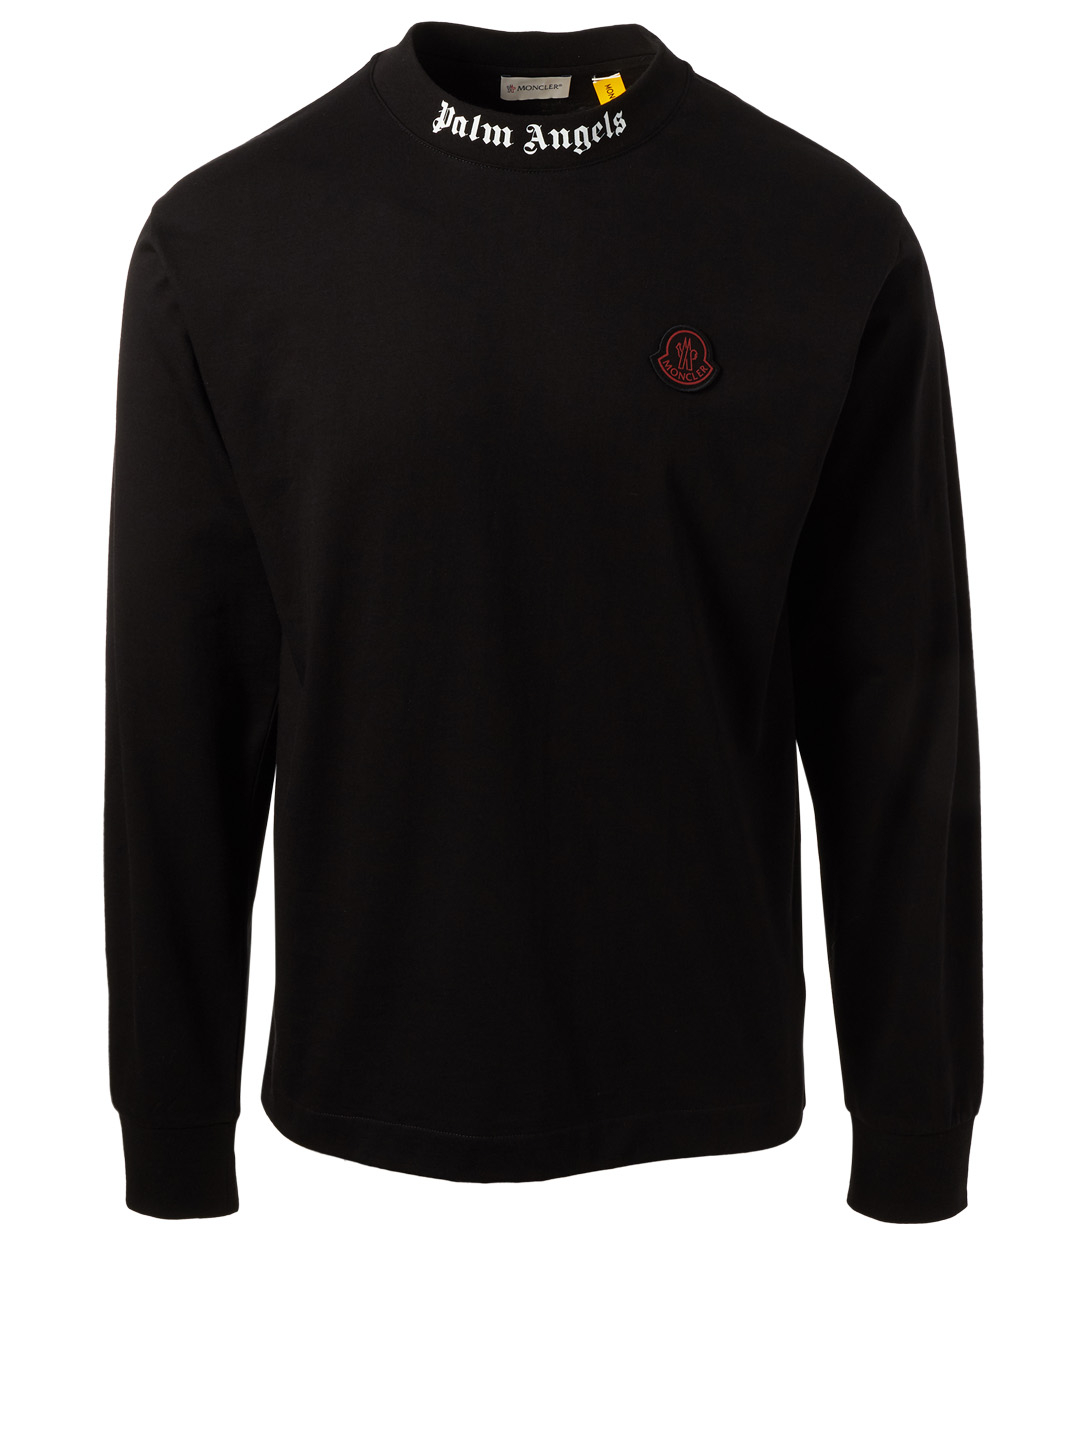 4a9b1a381 MONCLER GENIUS 8 Moncler x Palm Angels Long Sleeve T-Shirt | Holt ...